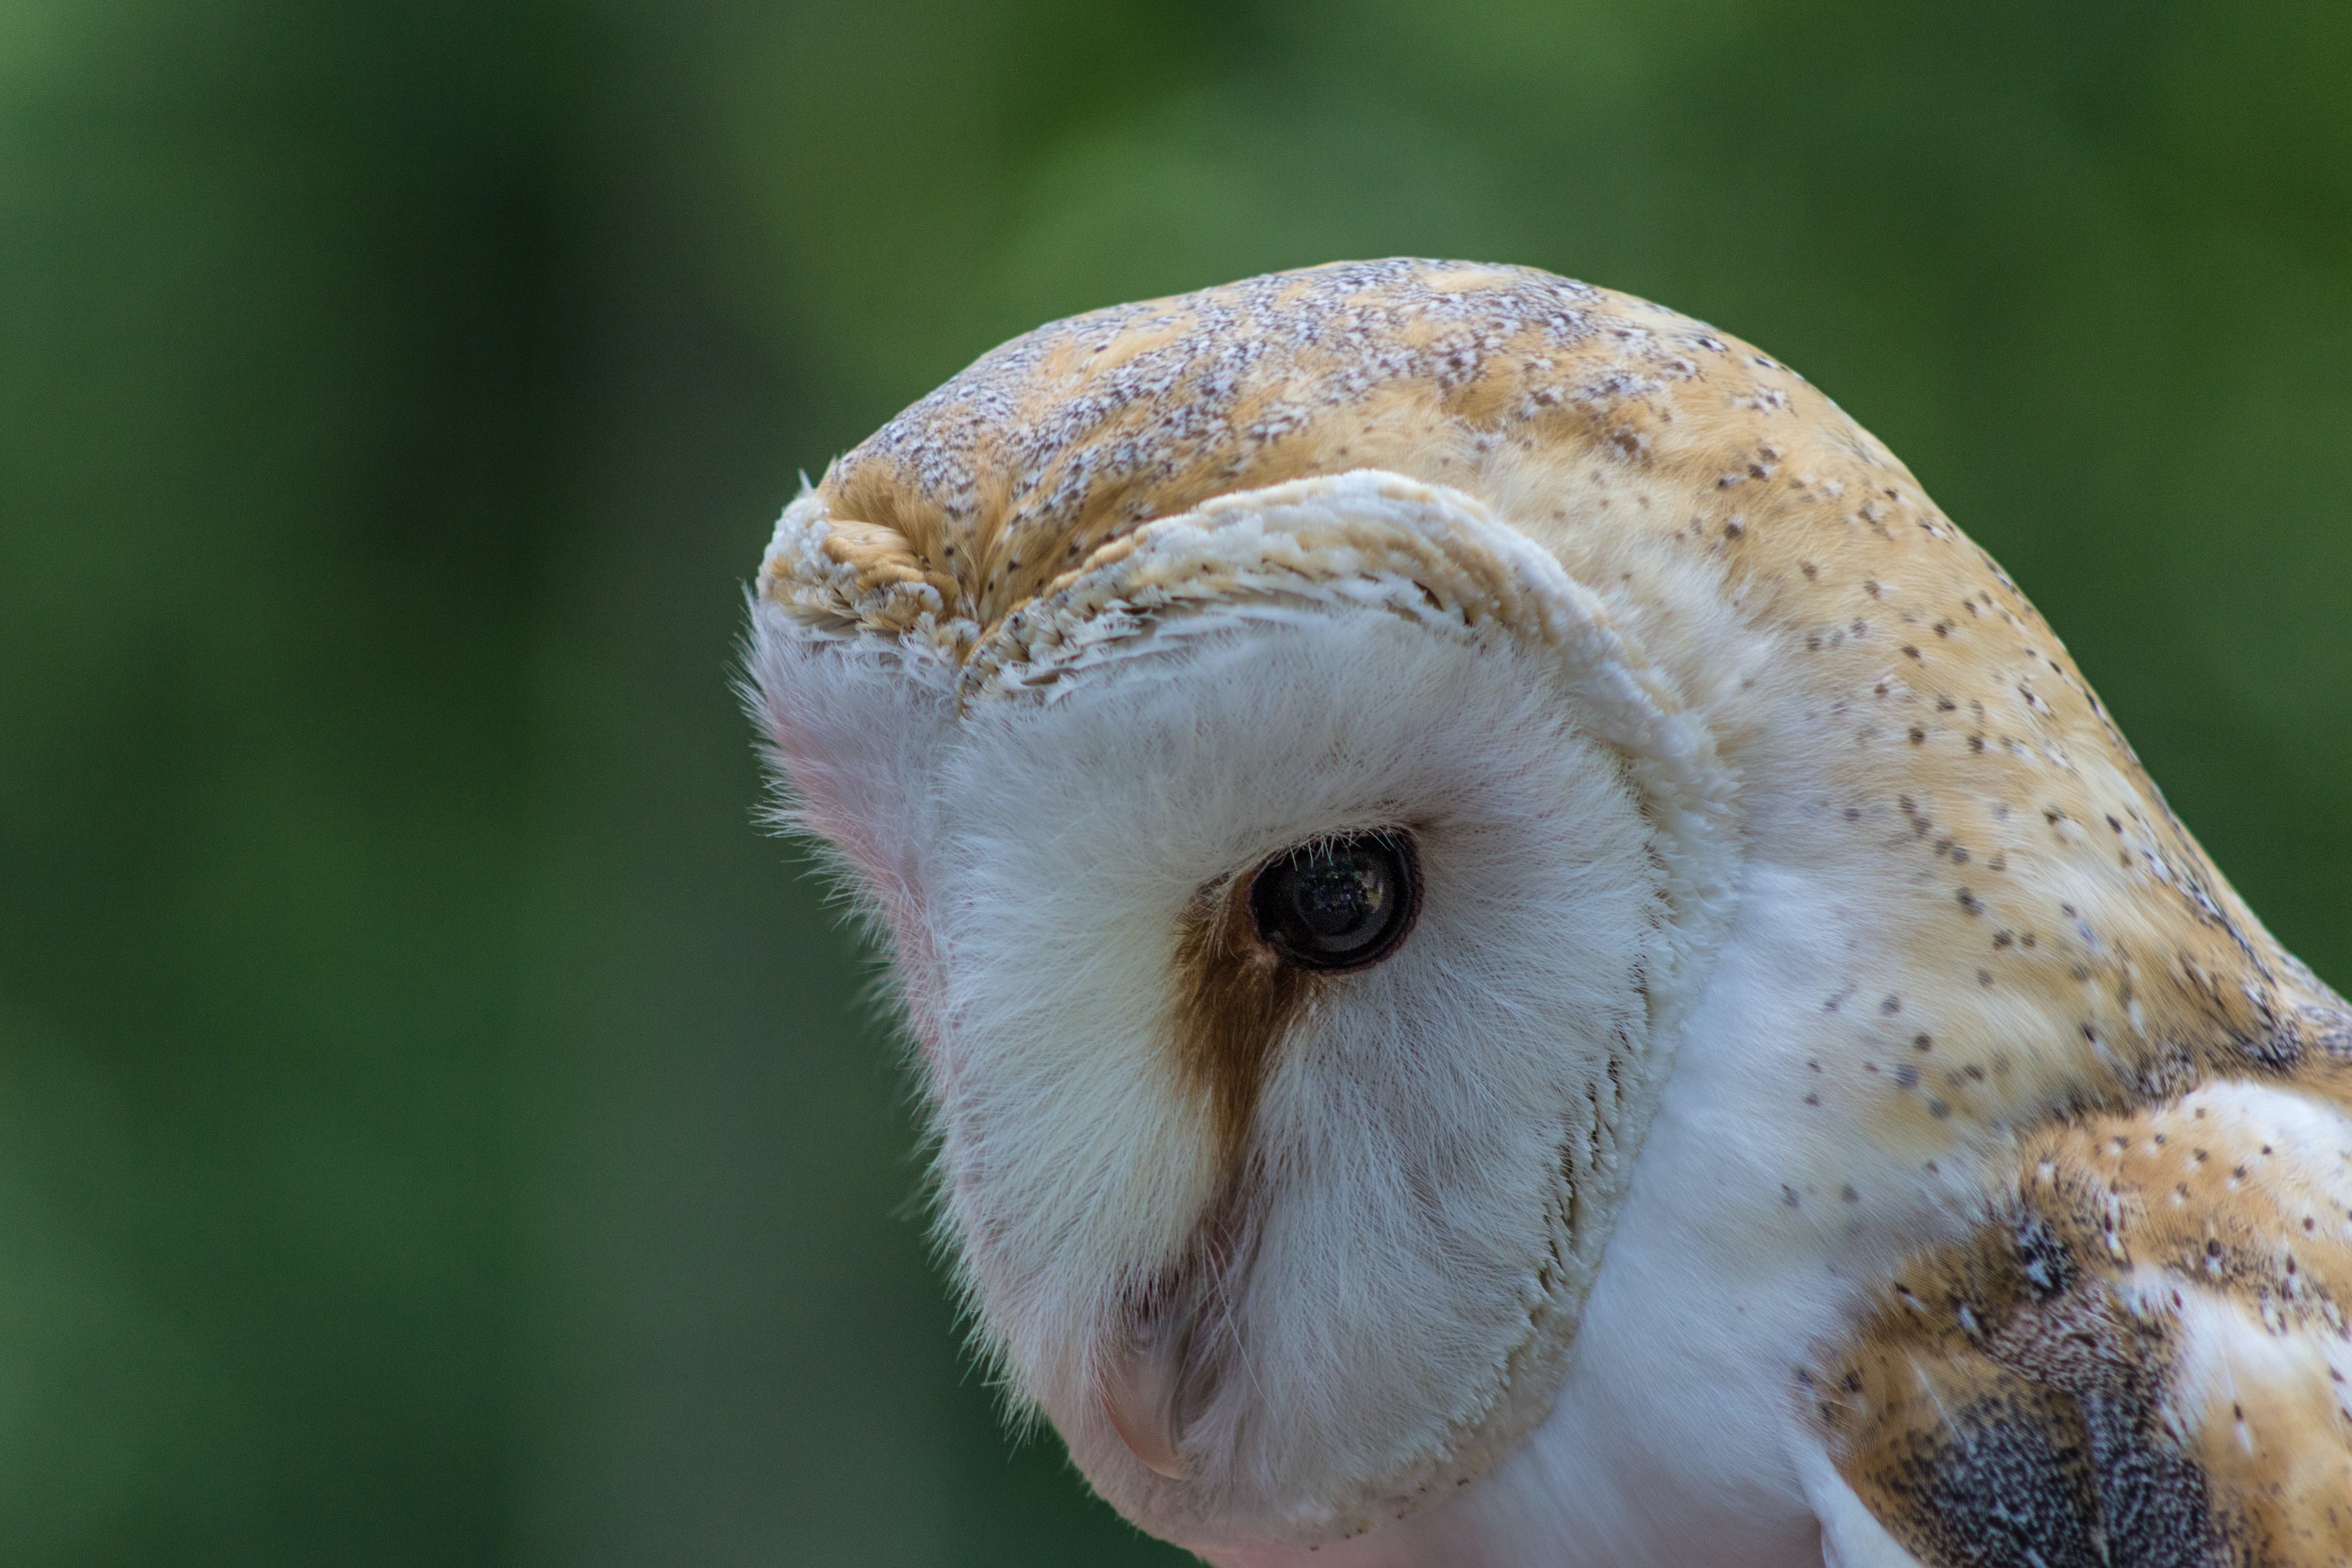 closeup photo of white barn owl